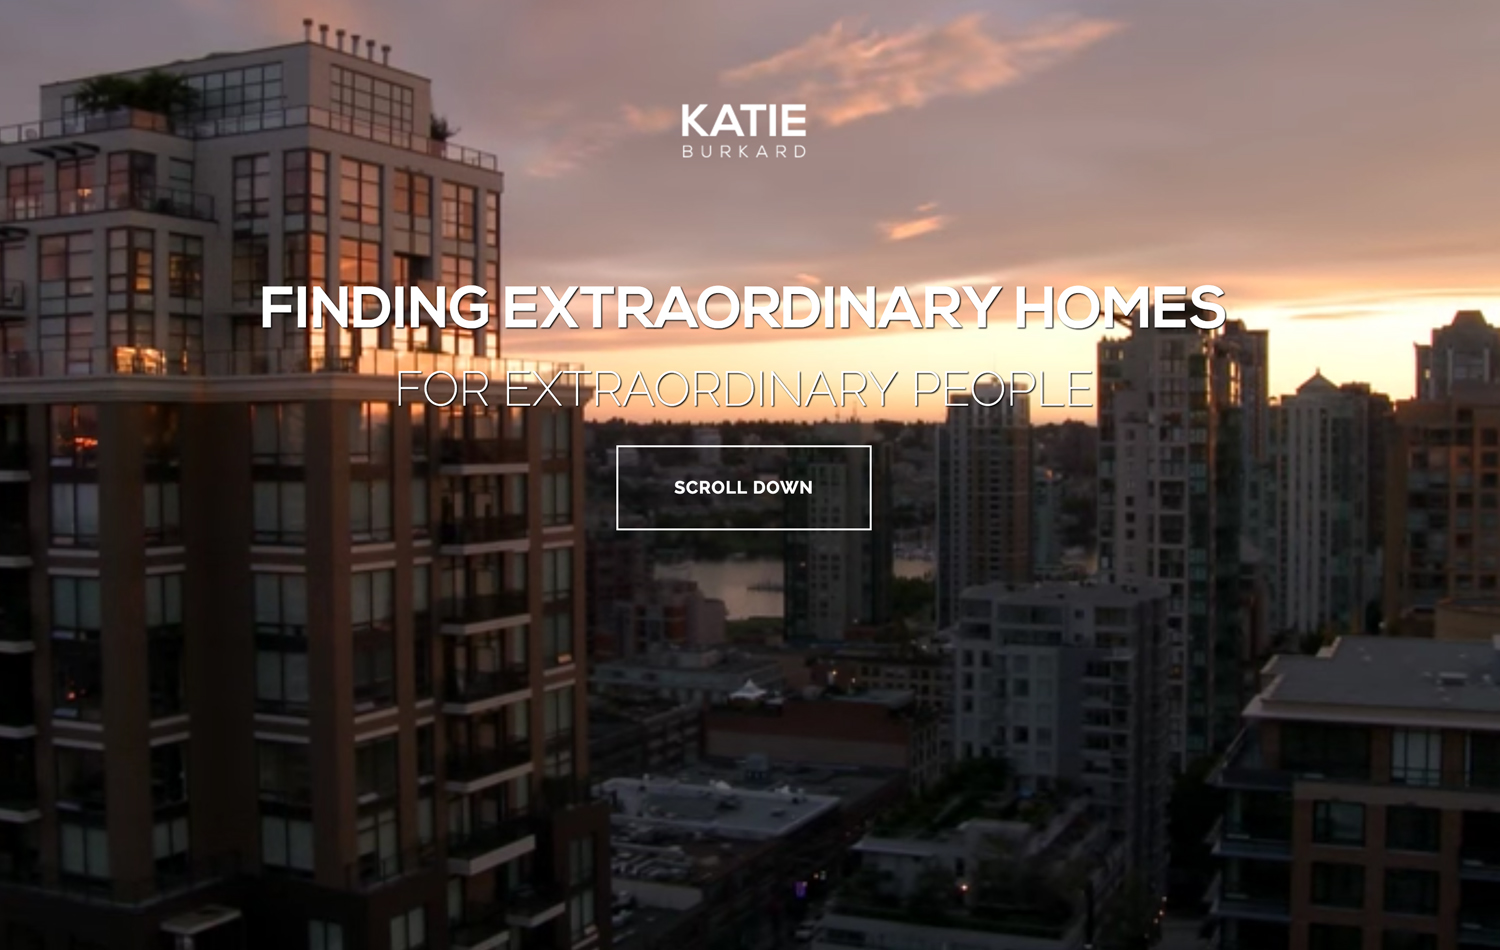 katie burkard real estate website screenshot